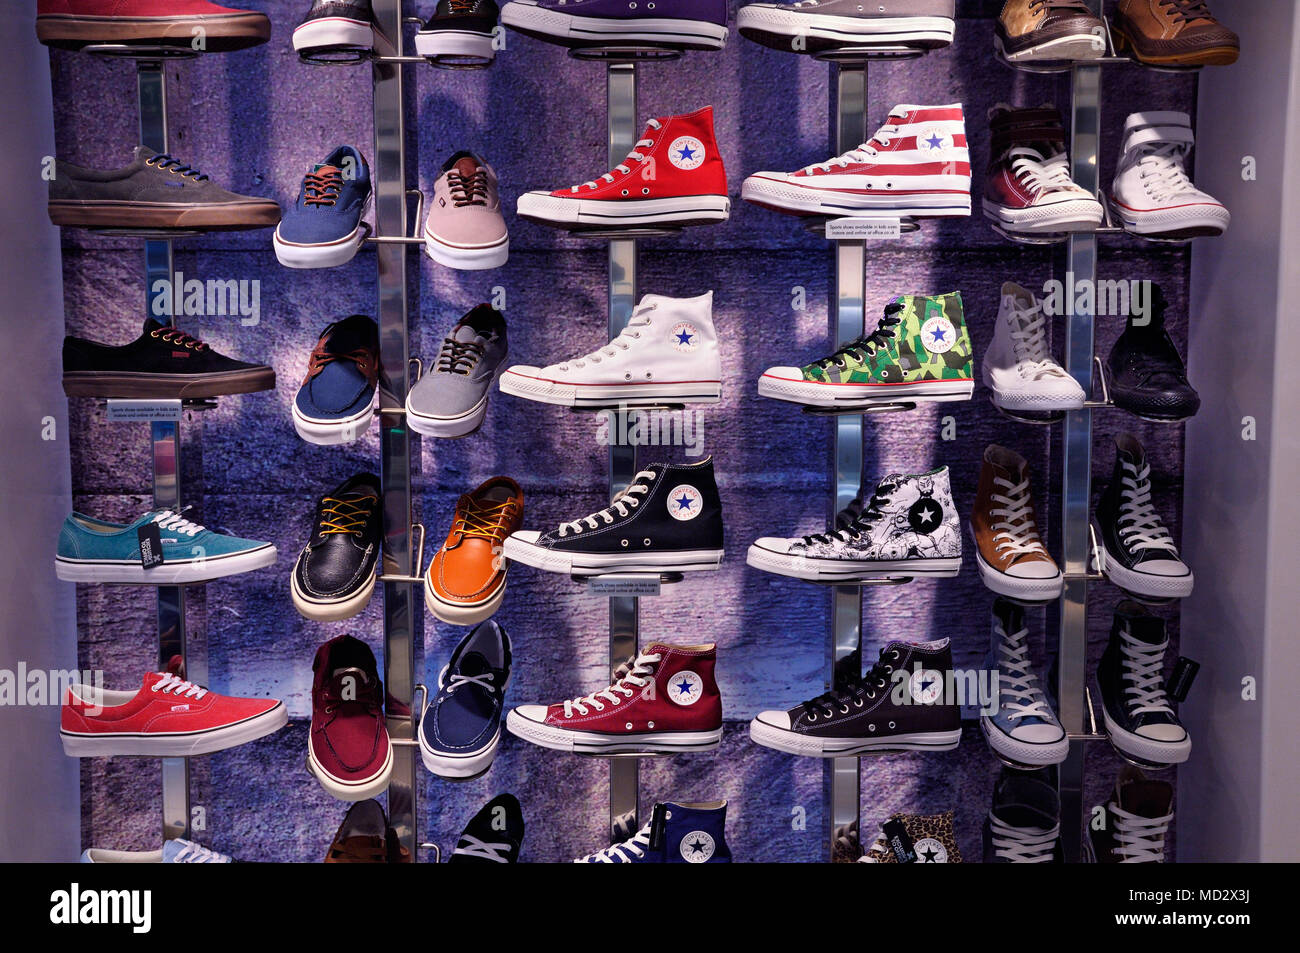 Converse trainers and Vans shoes in shop display - Stock Image